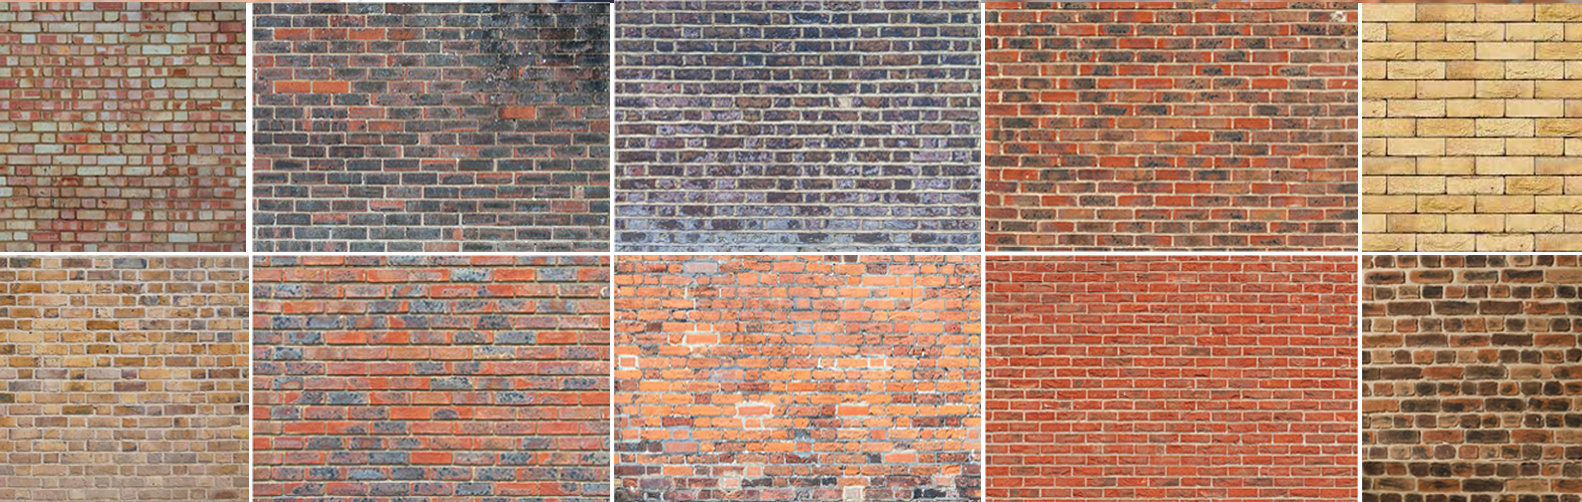 brick-collage